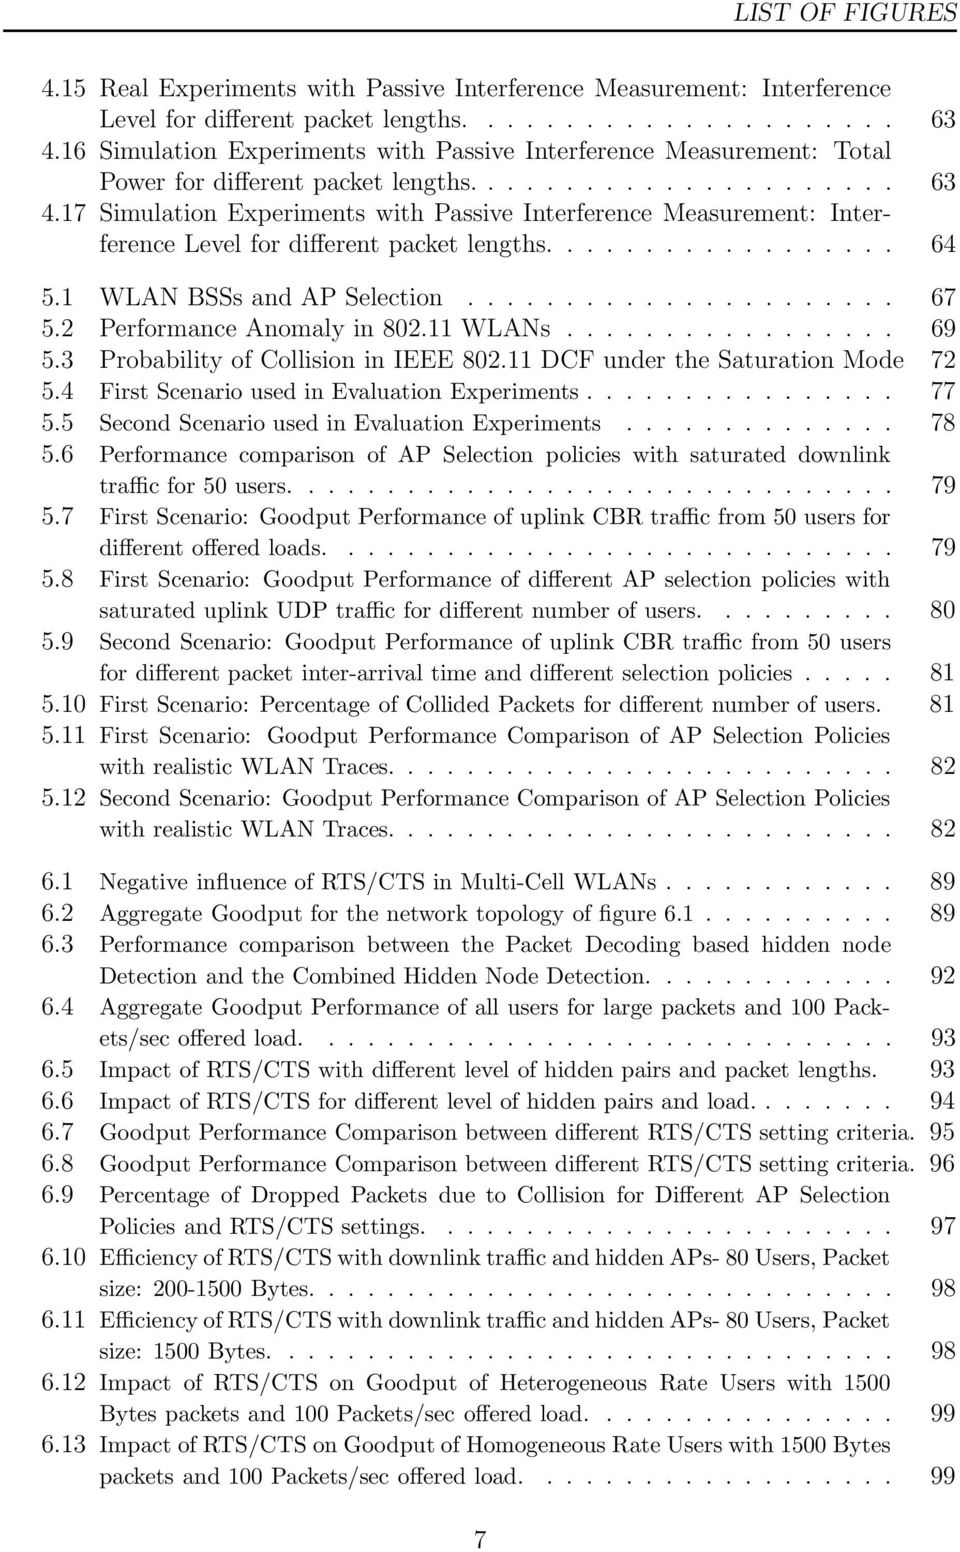 17 Simulation Experiments with Passive Interference Measurement: Interference Level for different packet lengths.................. 64 5.1 WLAN BSSs and AP Selection...................... 67 5.